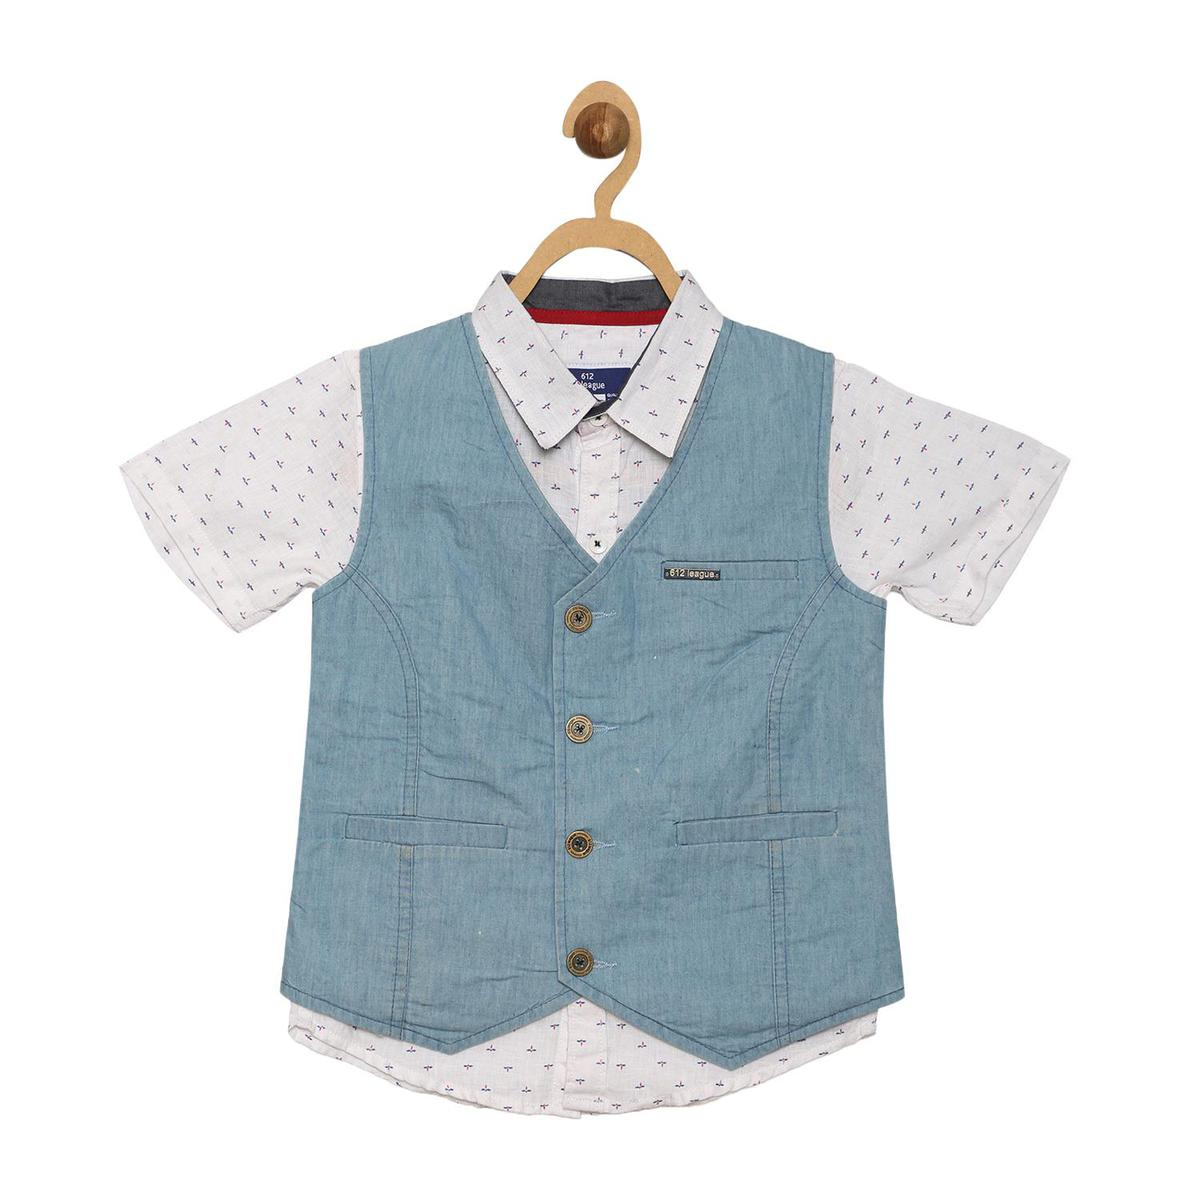 612 League - White Colored Printed Shirt With Denim Waist Coat For Boys